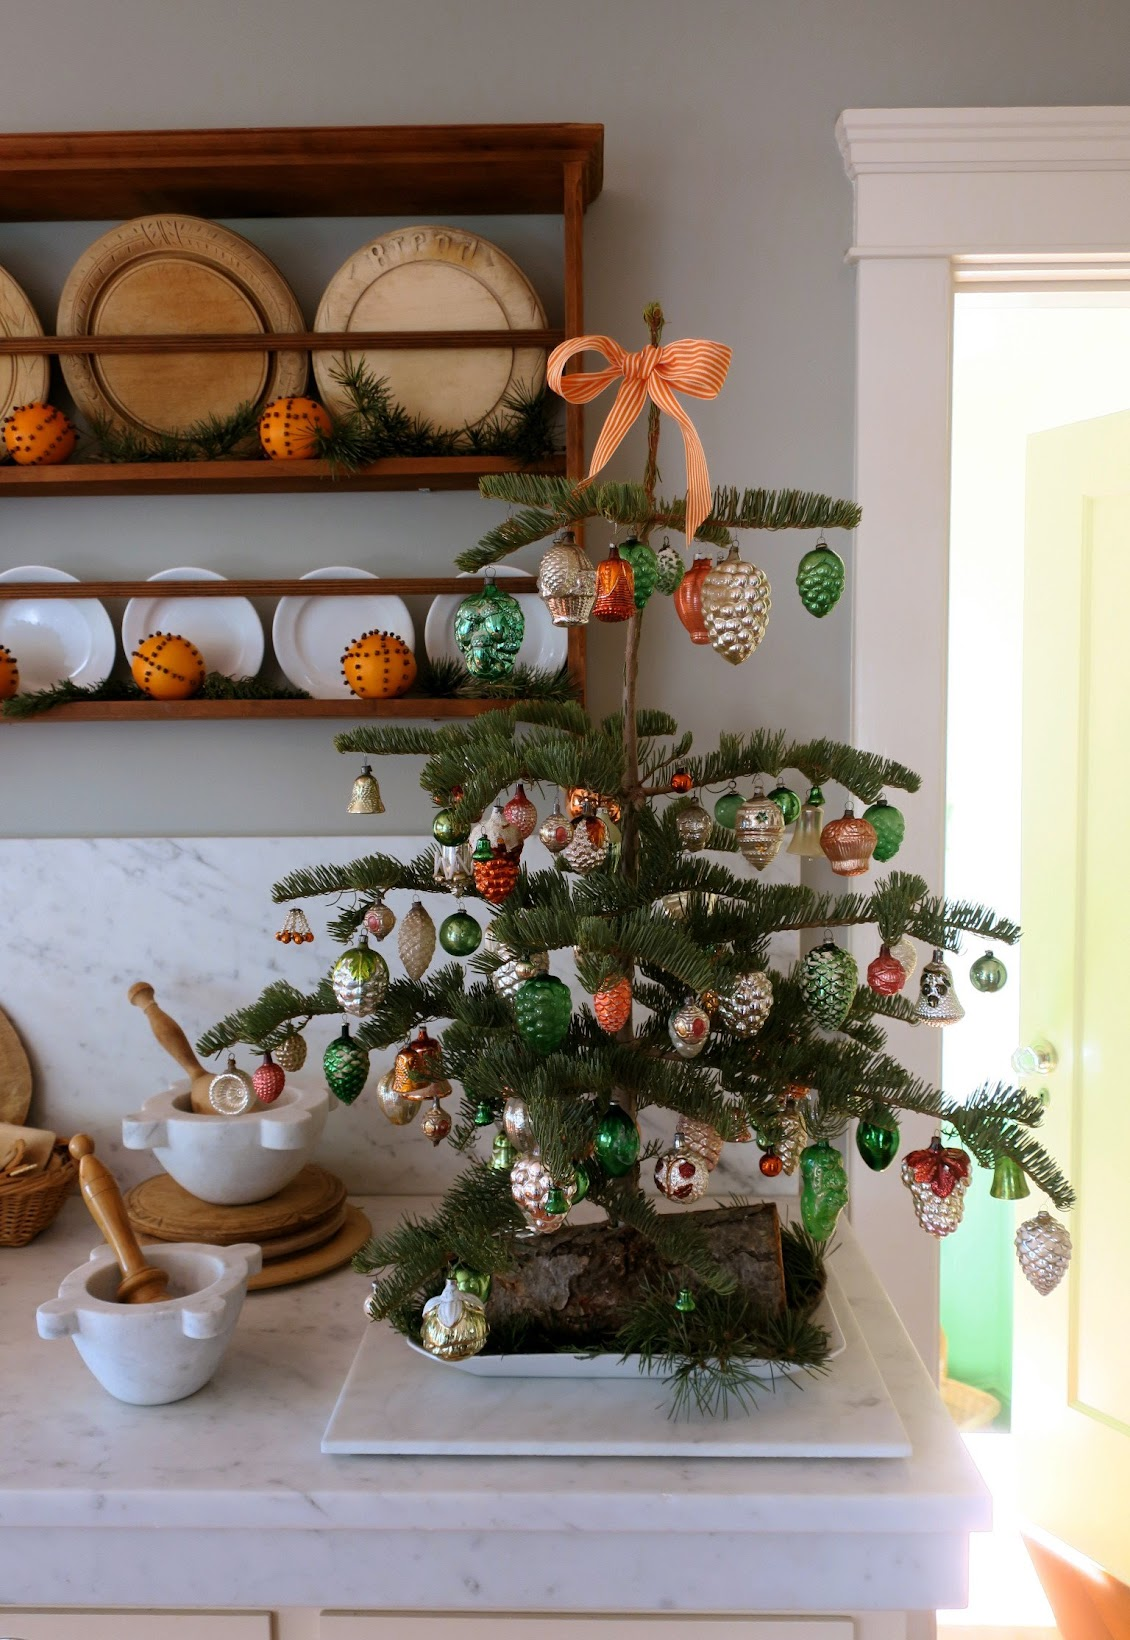 Chronica Domus: A Kitchen Tree For Christmas